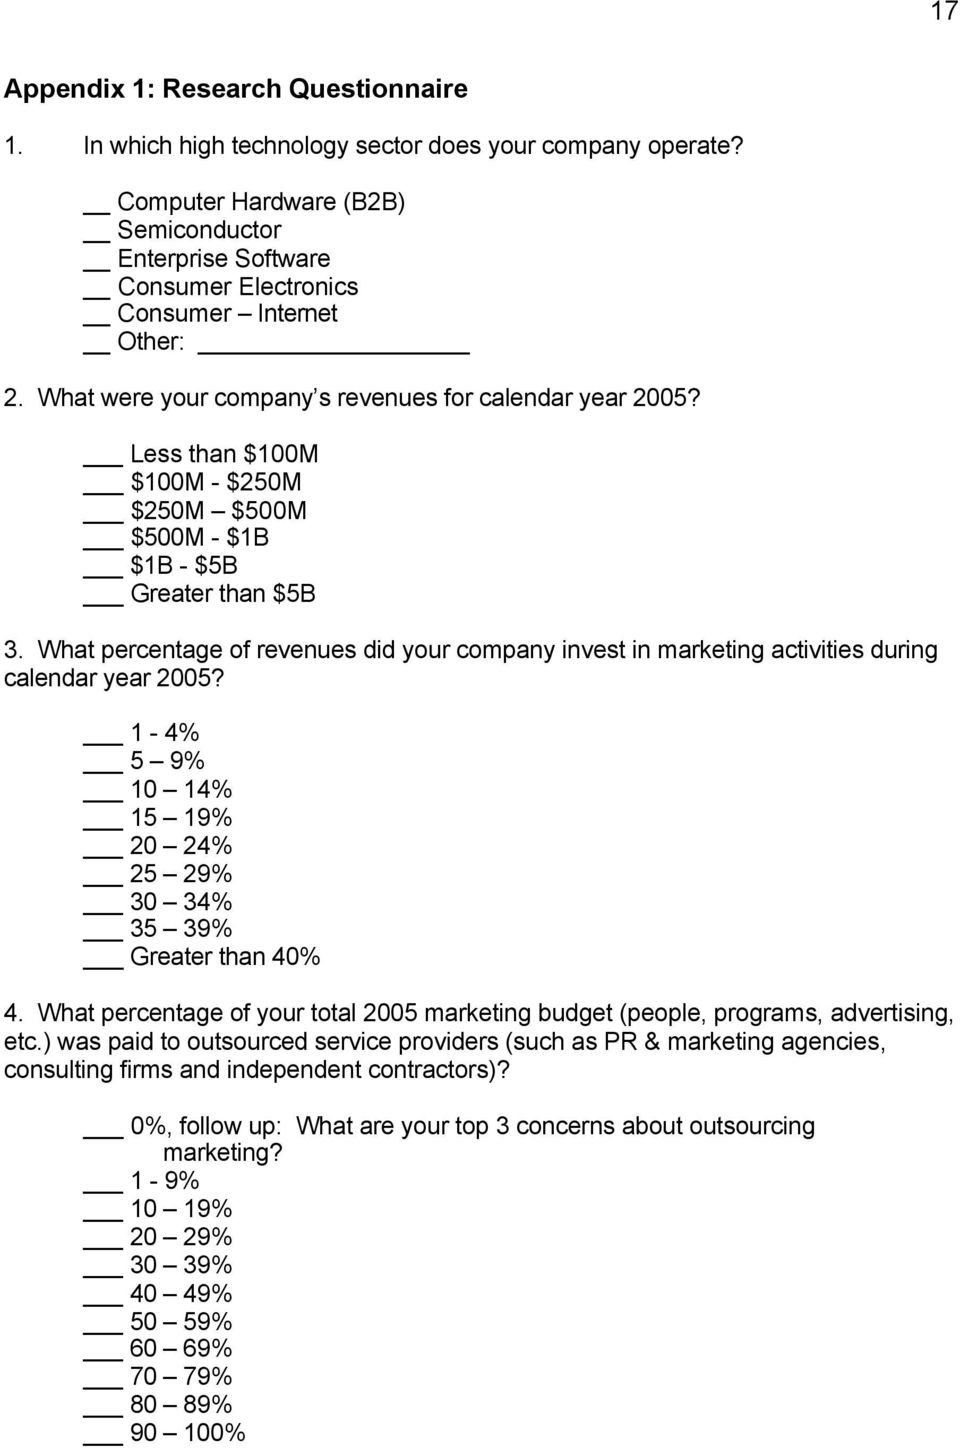 Less than $100M $100M - $250M $250M $500M $500M - $1B $1B - $5B Greater than $5B 3. What percentage of revenues did your company invest in marketing activities during calendar year 2005?